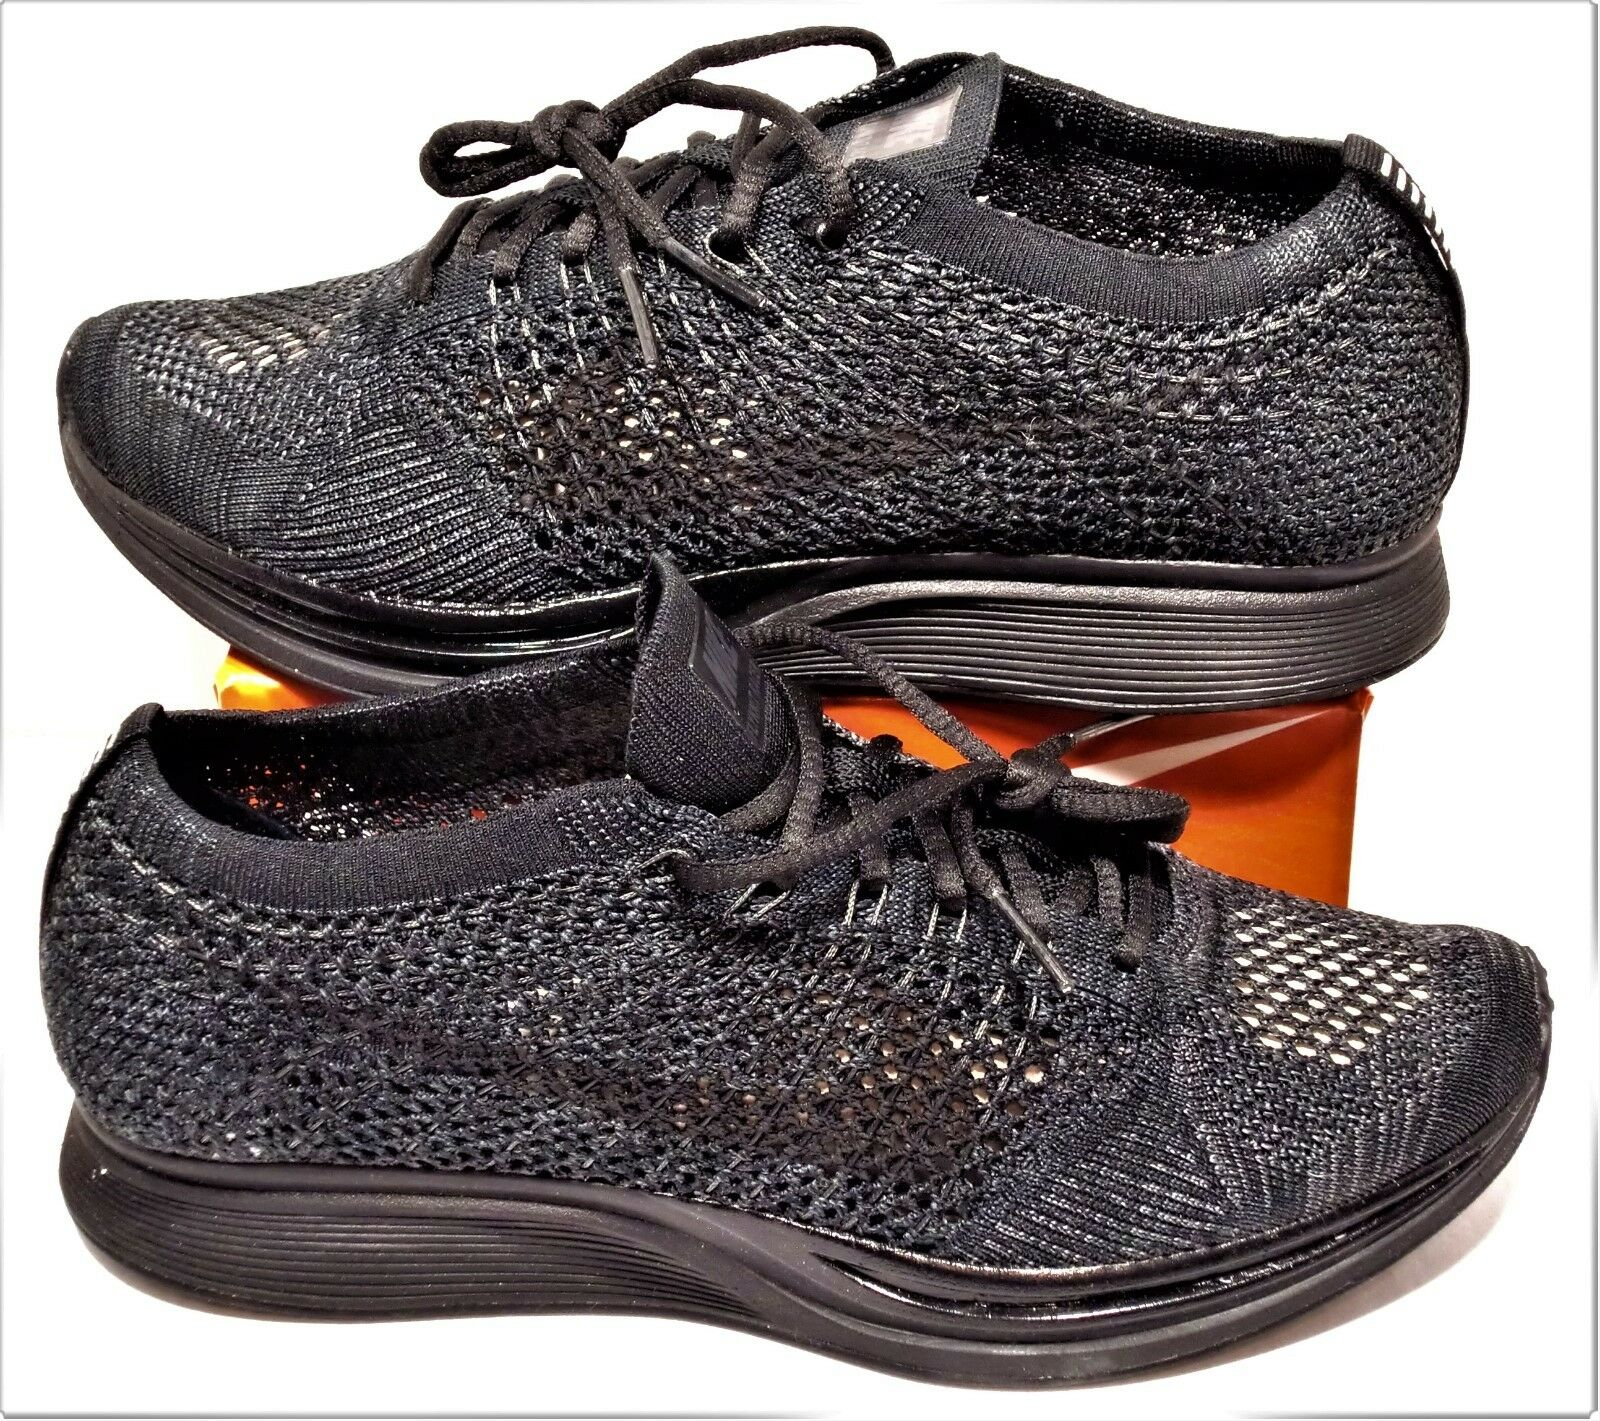 Nike Flyknit Racer Triple Black Anthracite Womens 7 Mens Sz 5.5 NEW 526628 009